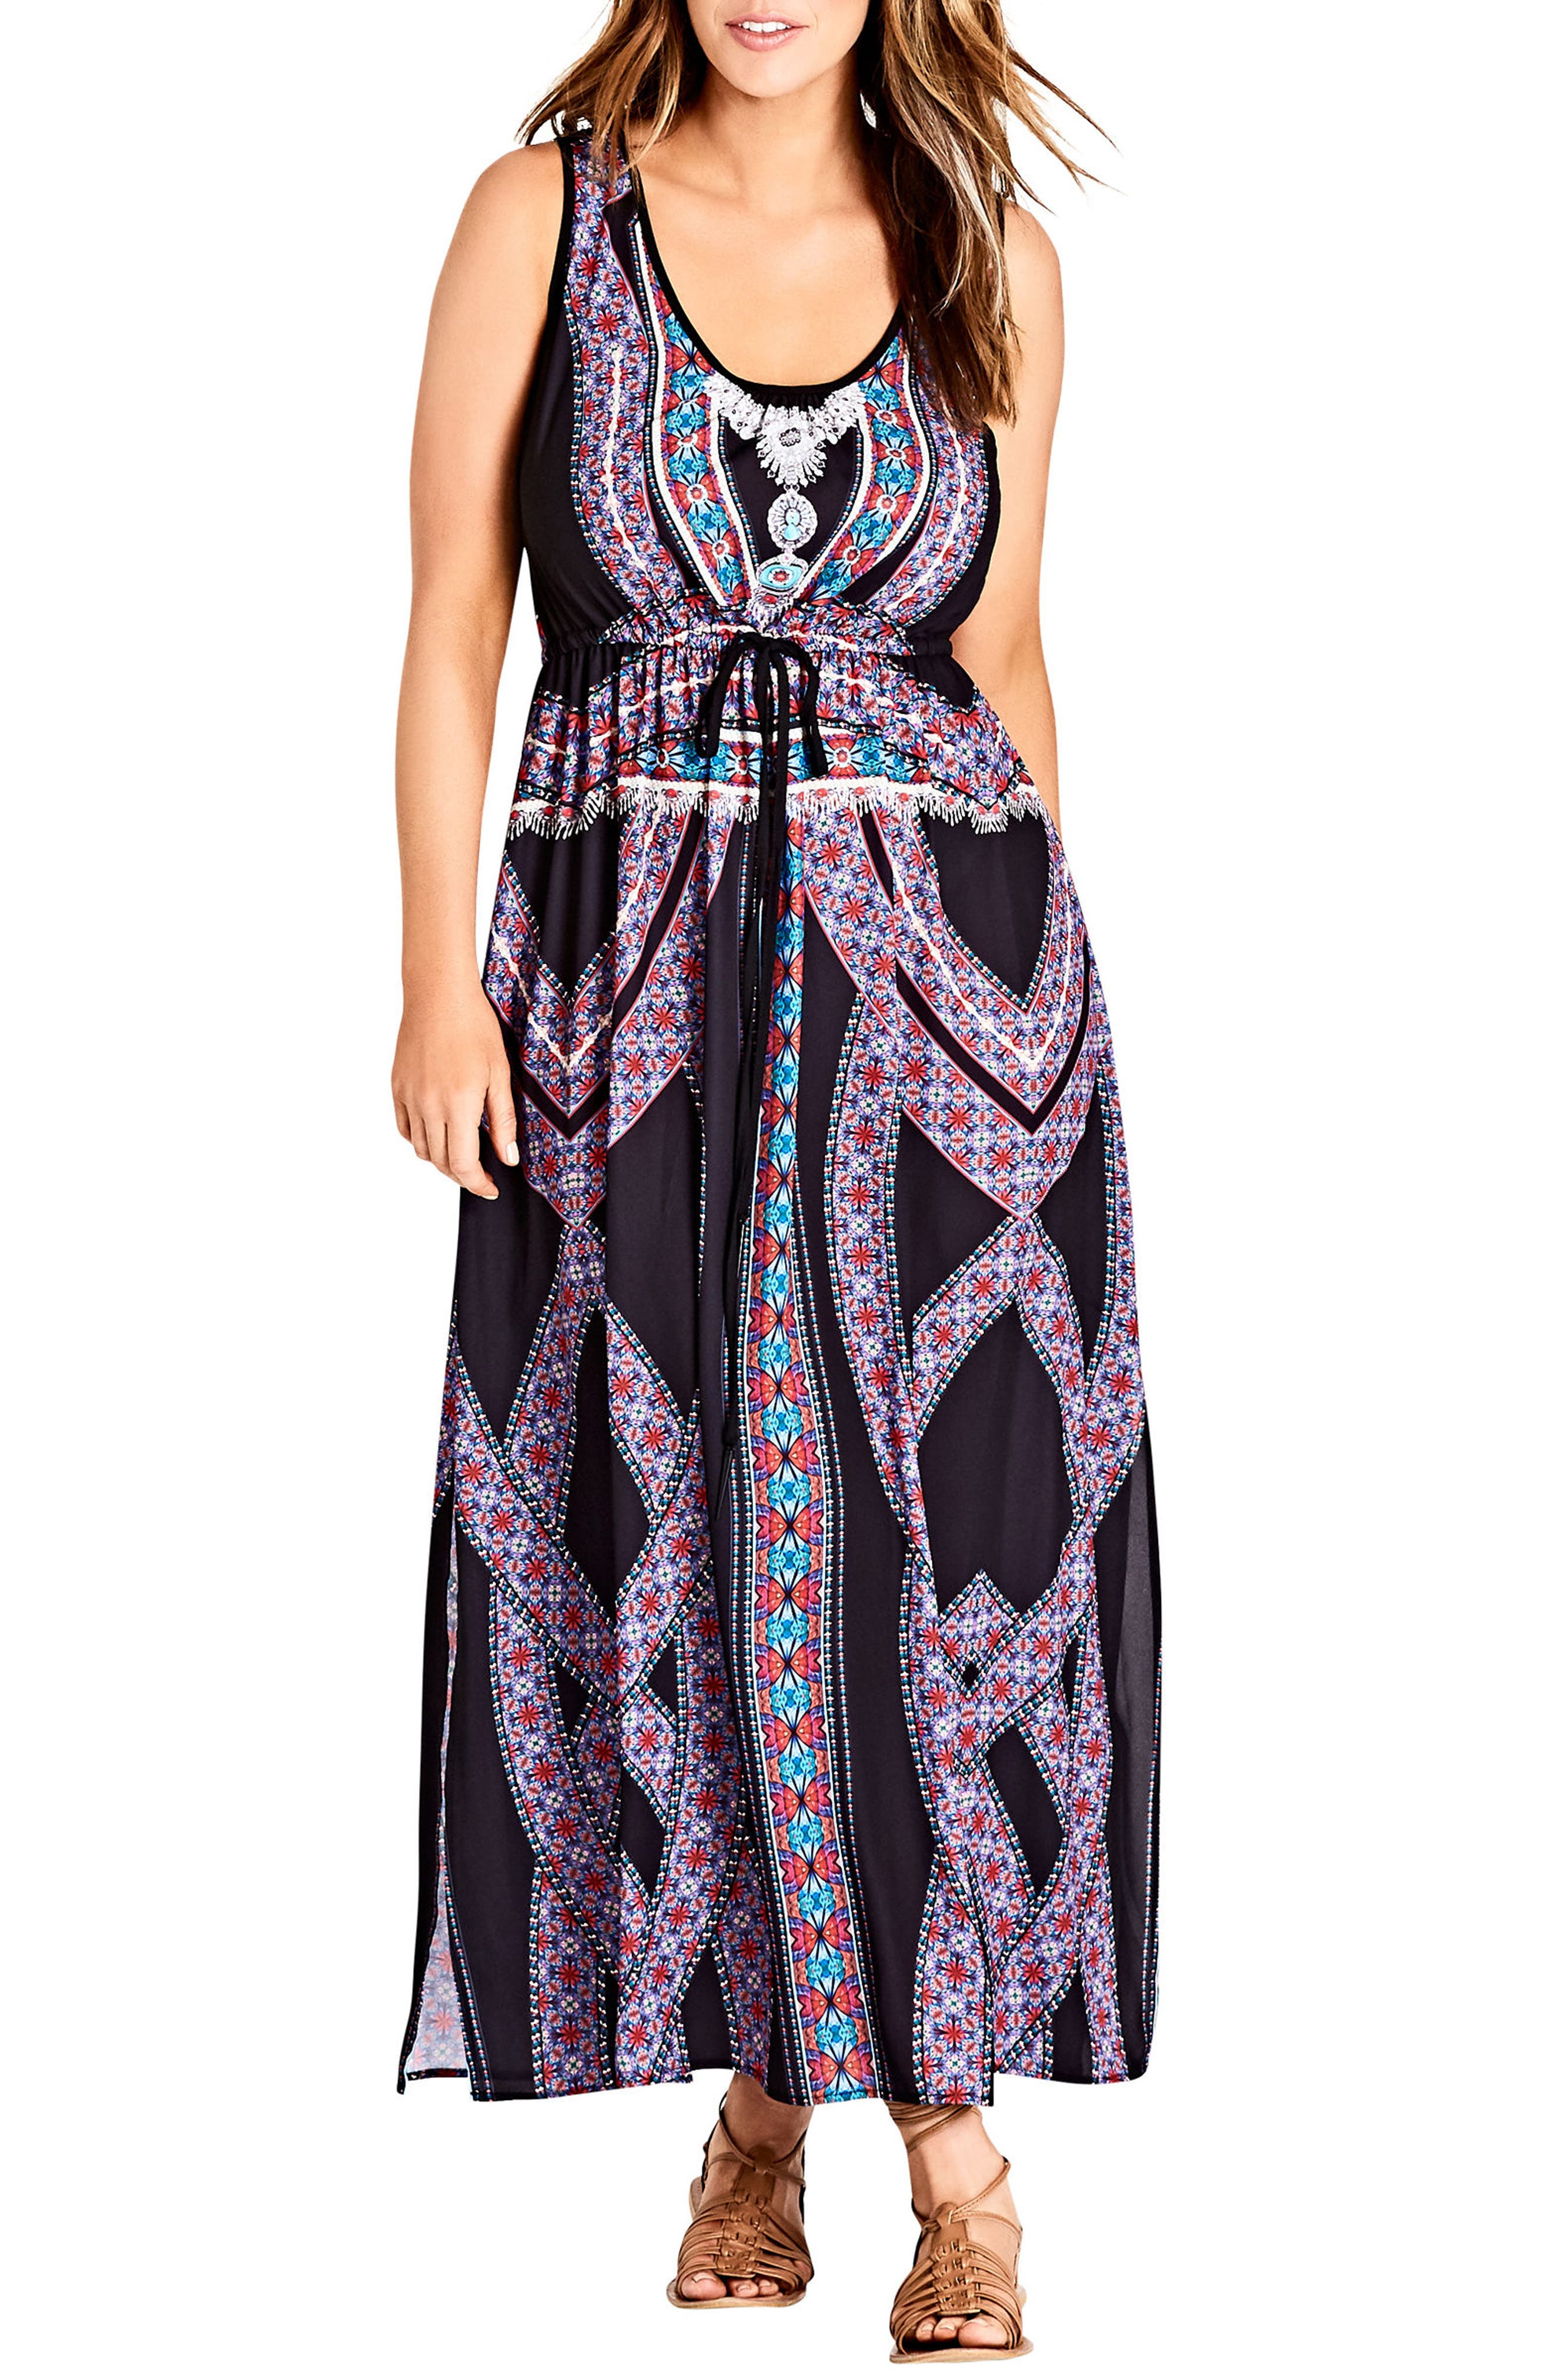 Brasilia Maxi Dress,                         Main,                         color, 001